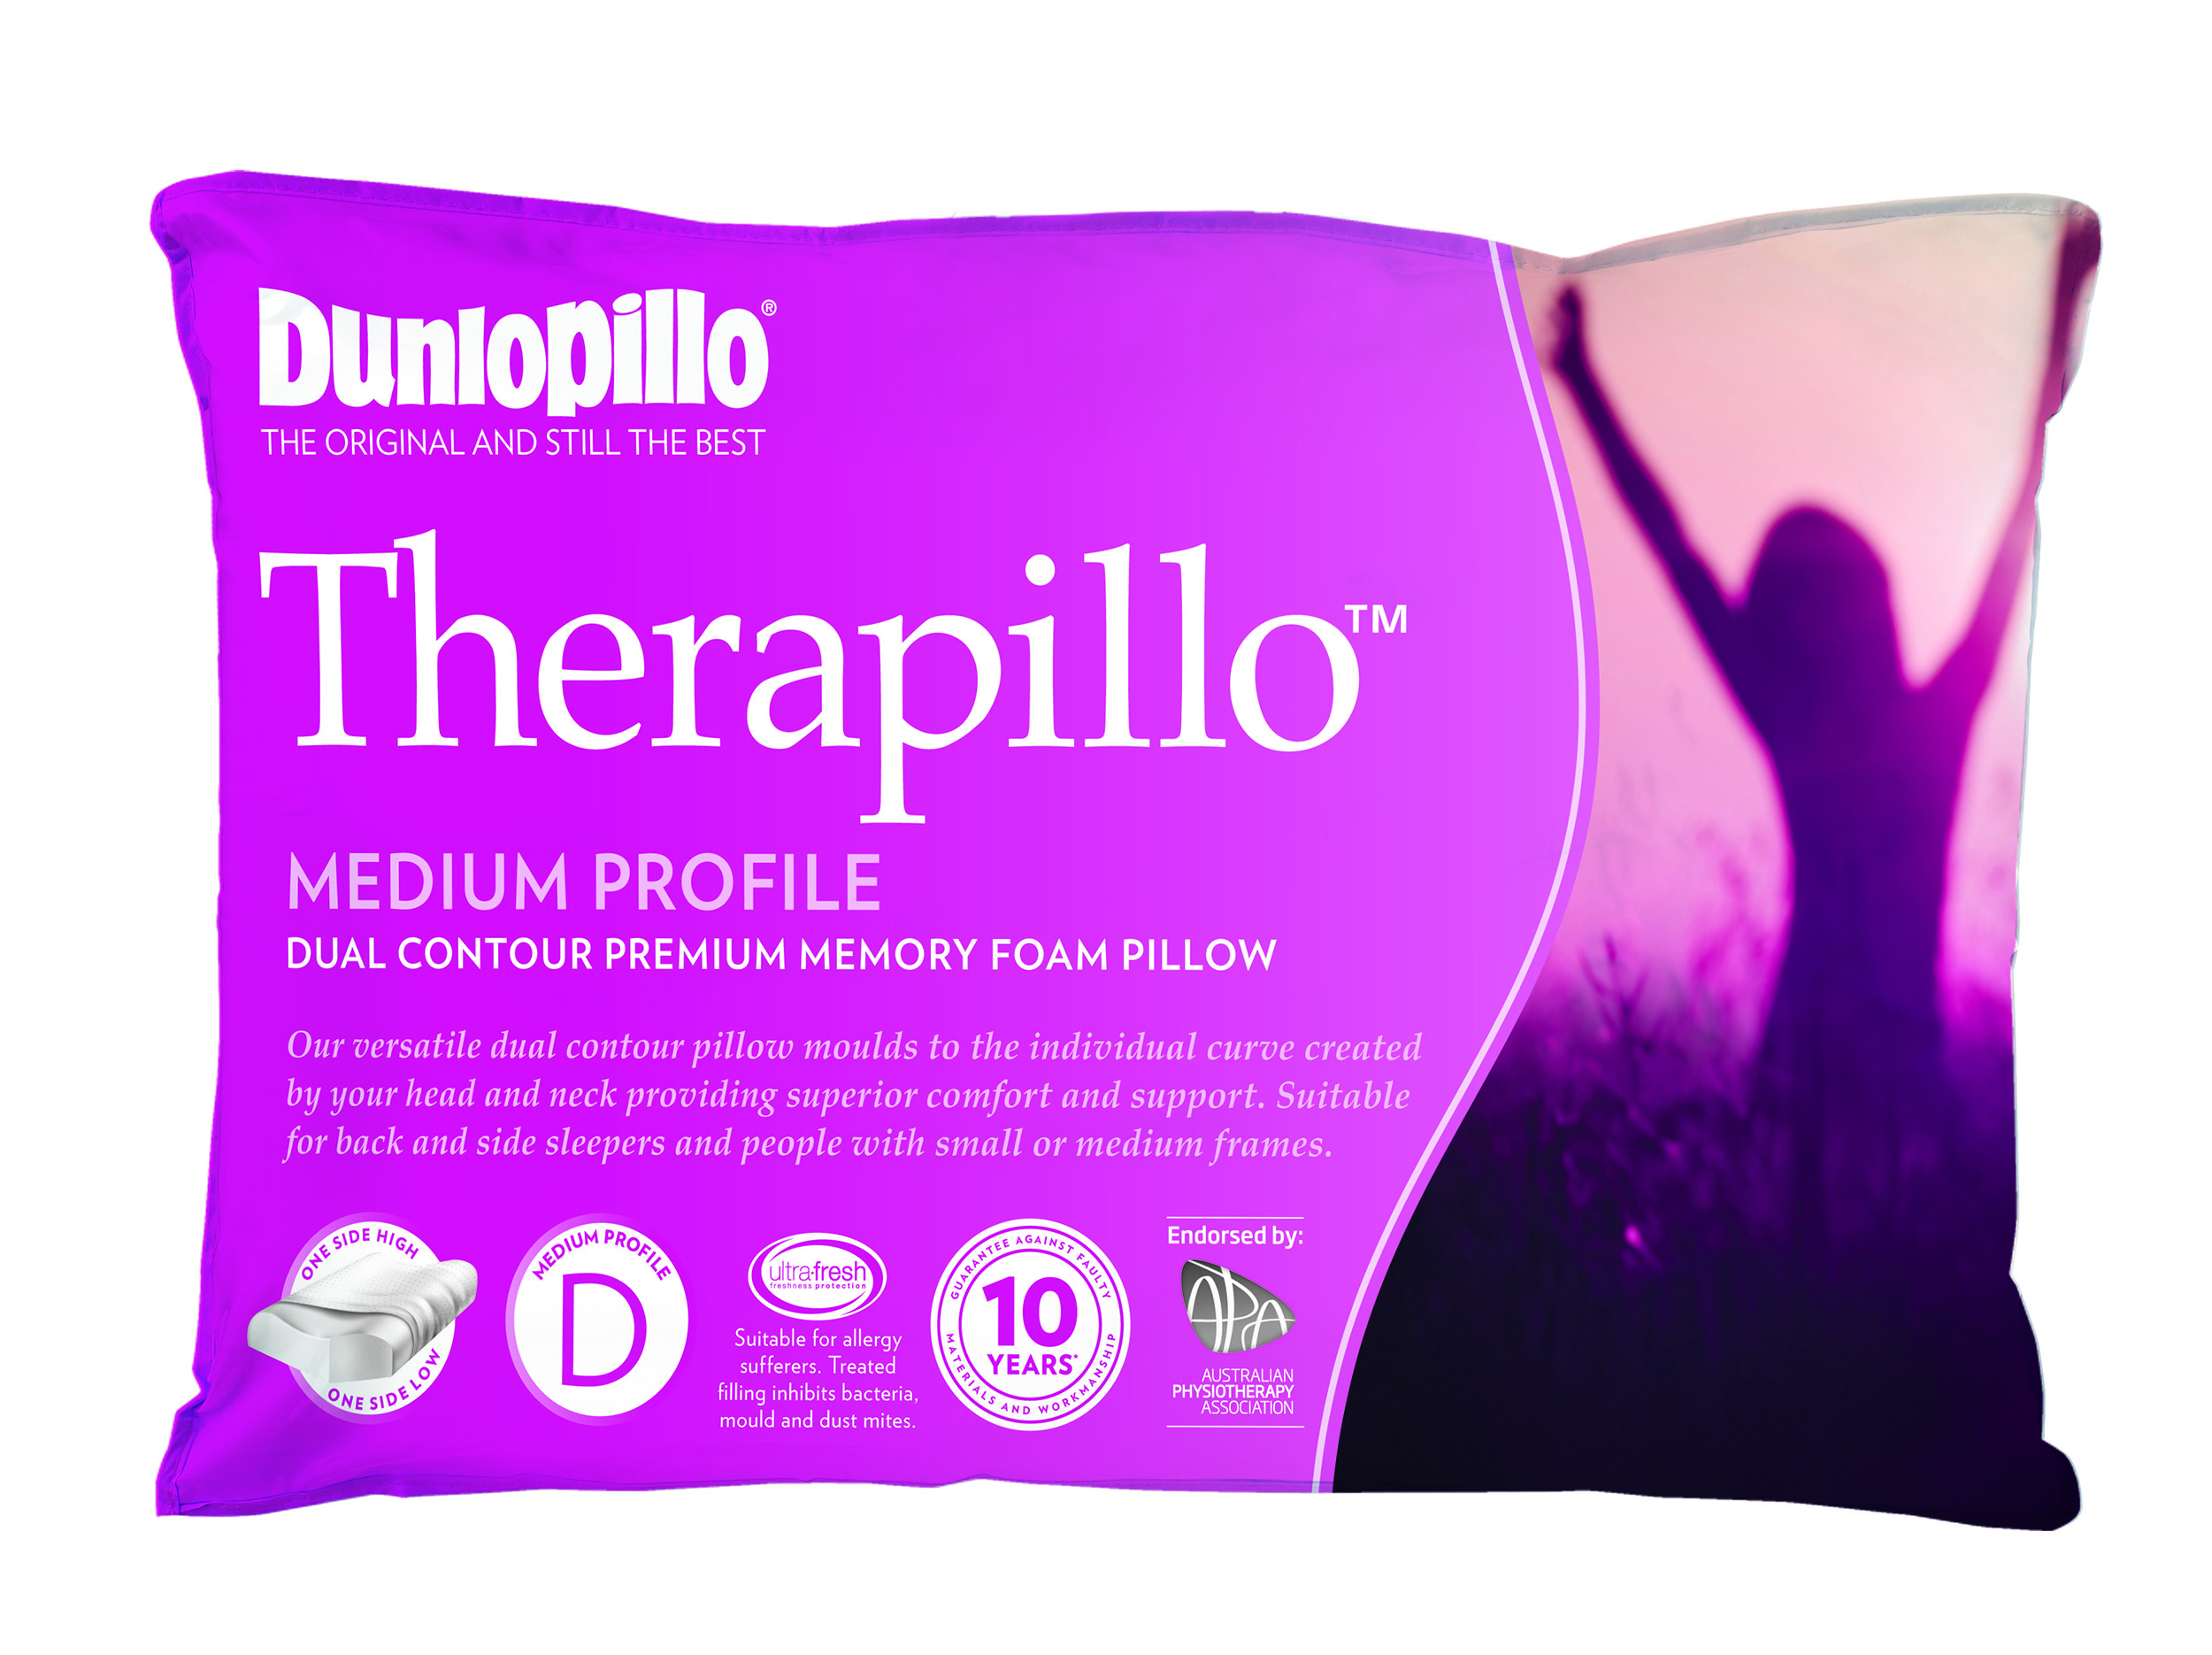 Therapillo Premium Memory Foam Medium Profile Dual Contour Pillow